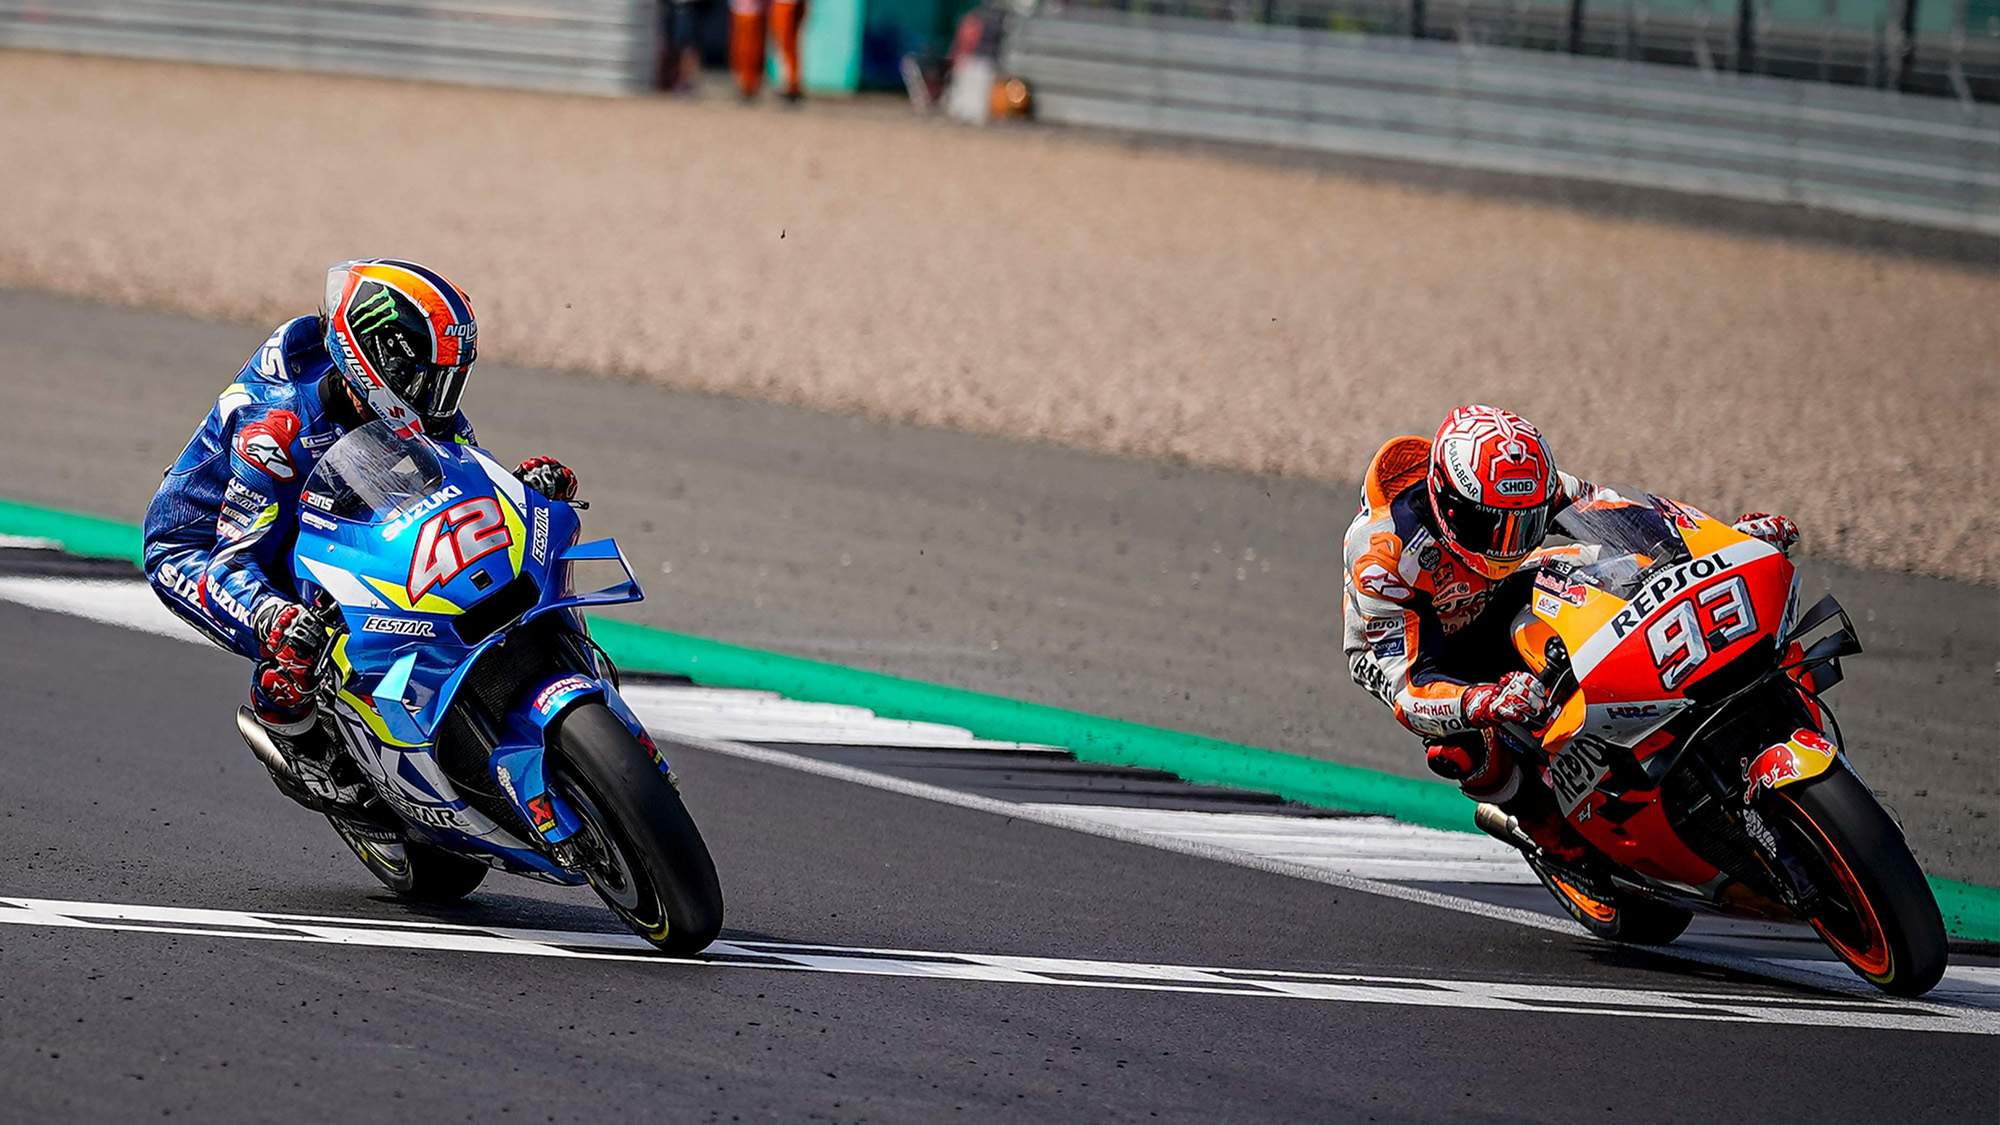 2019 MotoGP British GP Rins and Marquez